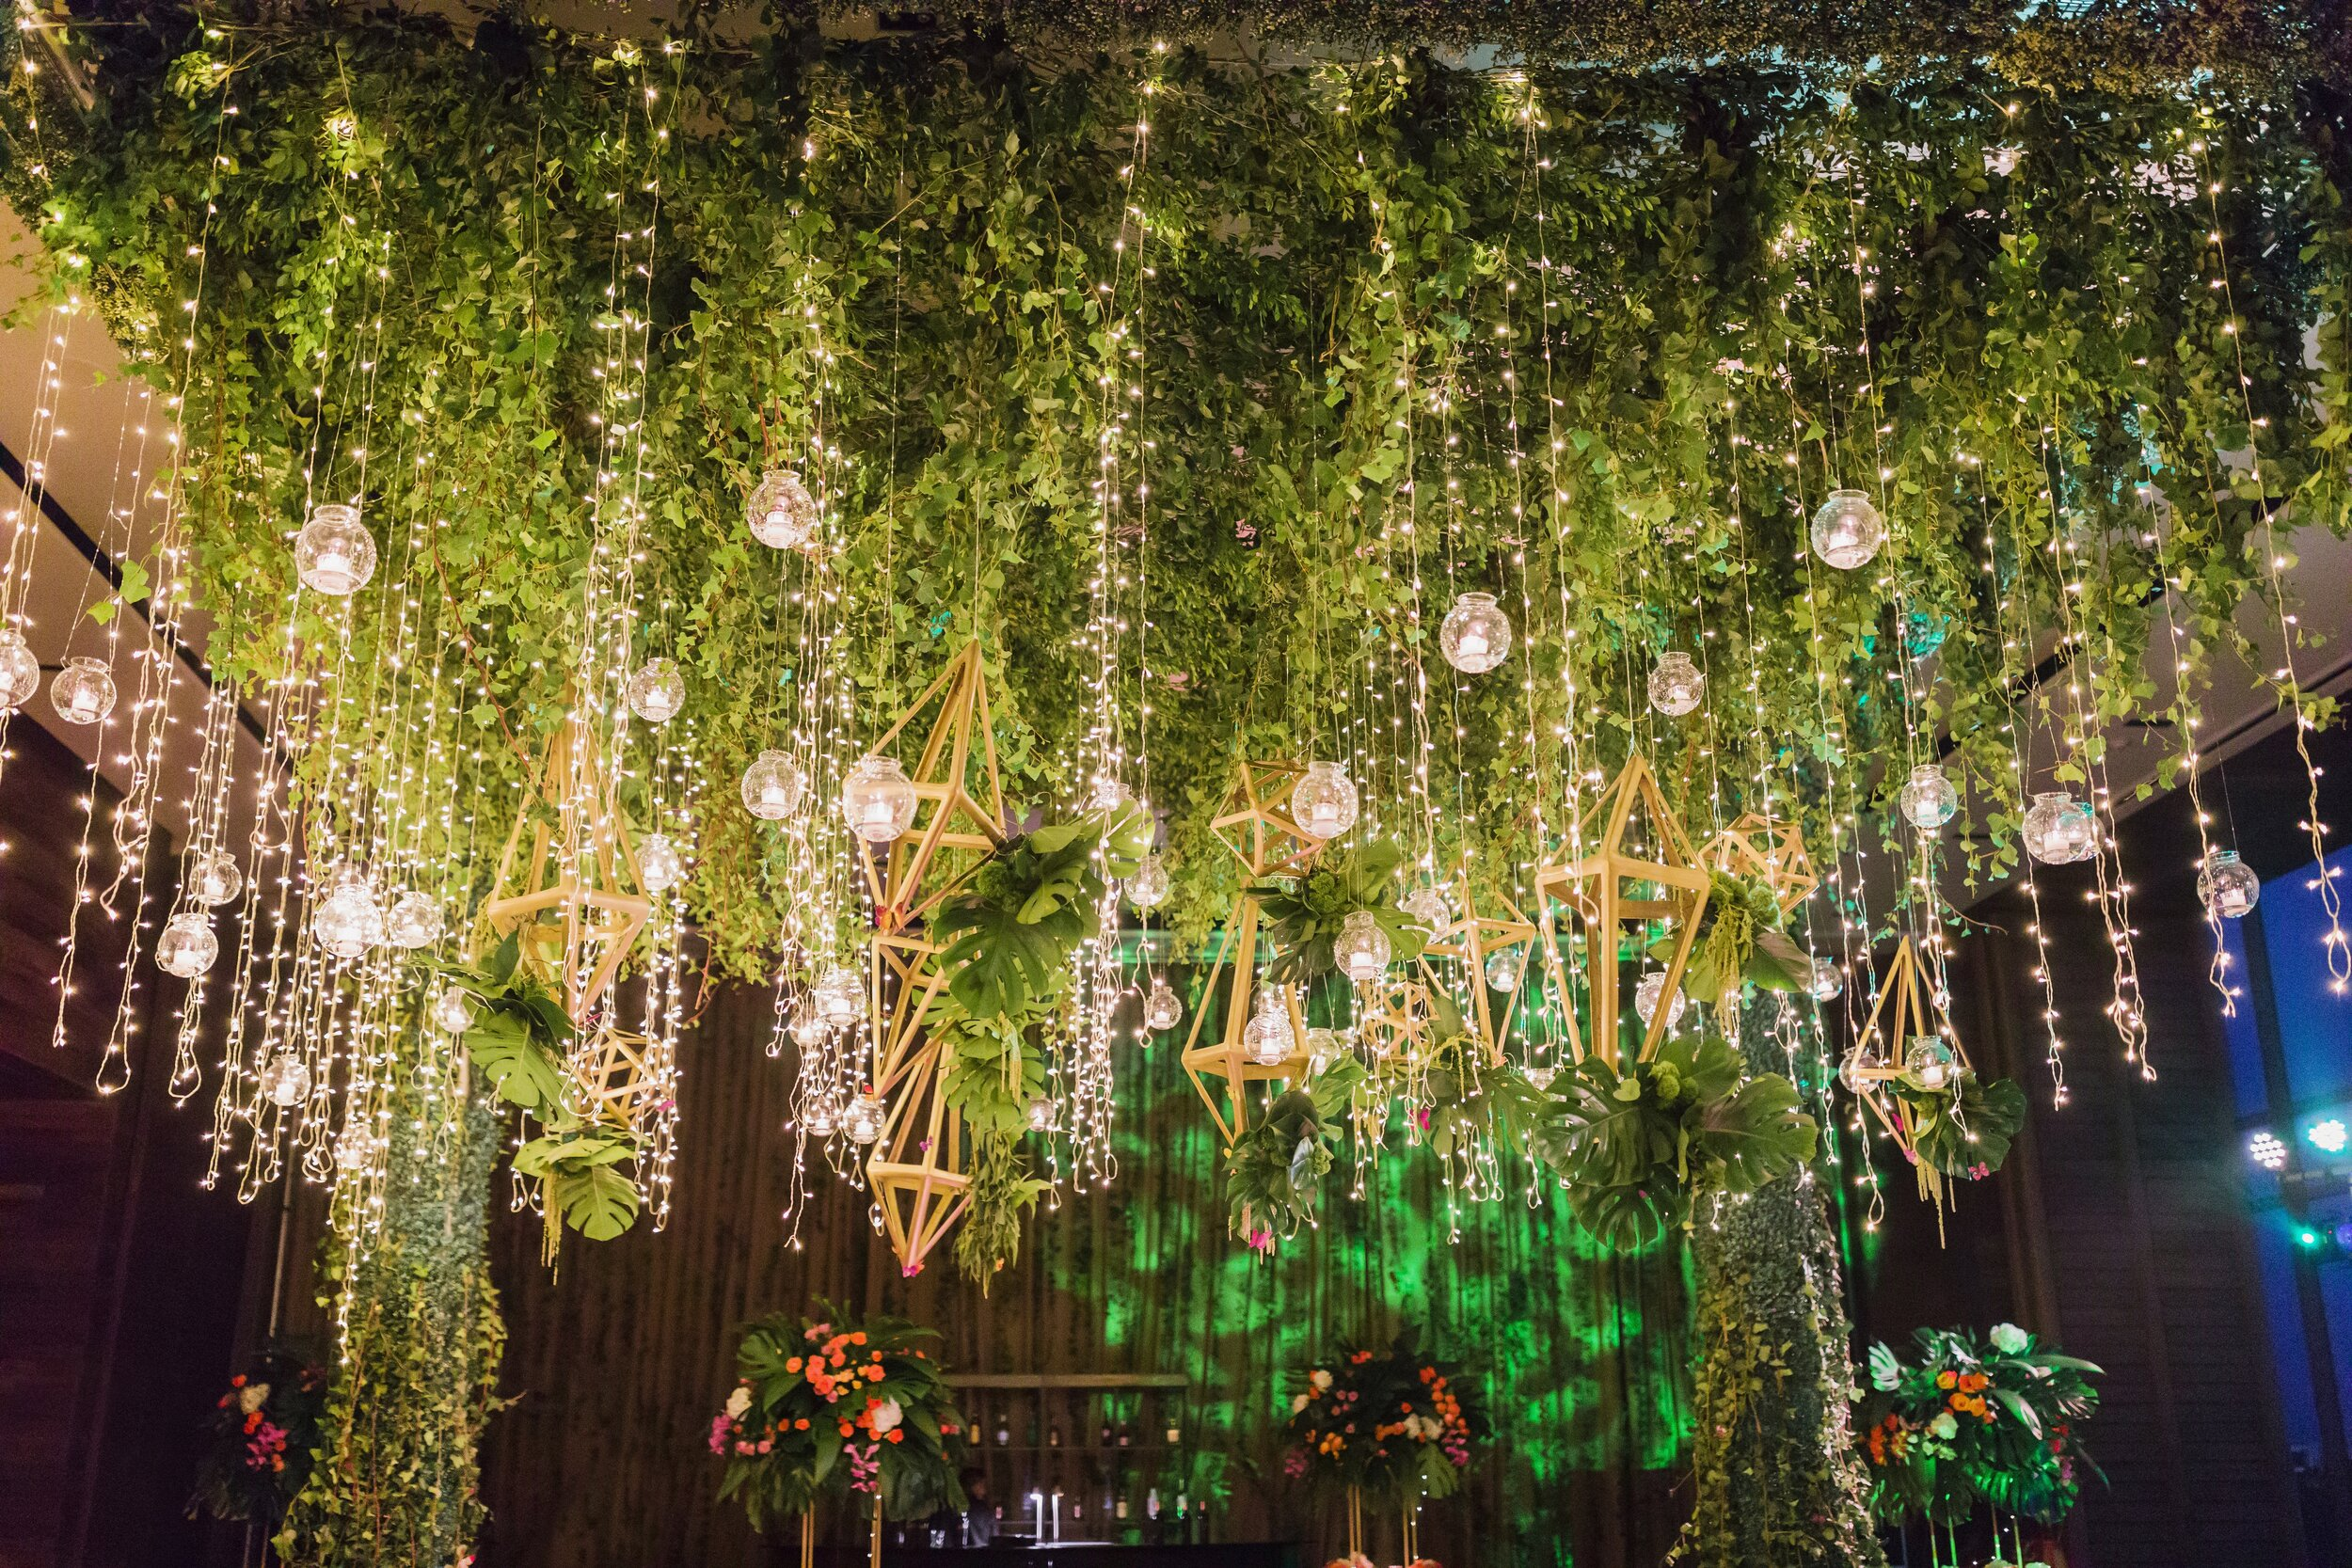 nizuc cancun resort under greenery and lights at wedding reception